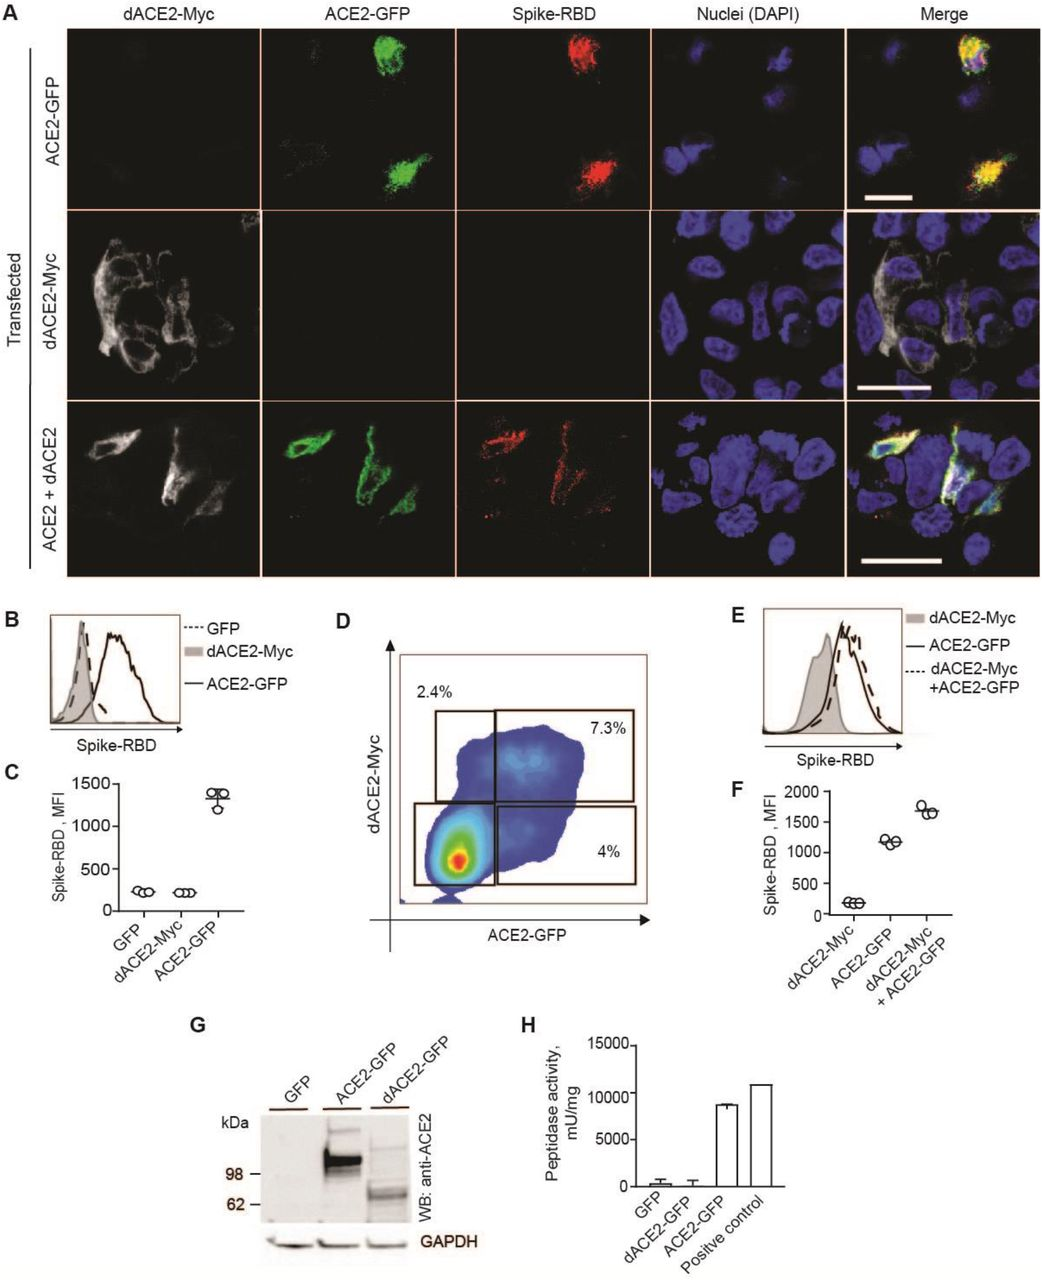 dACE2 is non-functional for binding SARS-CoV-2 spike protein RBD and as a carboxypeptidase. A) Representative confocal images of T24 cells transiently overexpressing dACE2-Myc (white), ACE2-GFP (green) and treated with receptor-binding domain (RBD) of SARS-CoV-2 spike protein (red), nuclei (DAPI)-blue; bars=20μM. B-D) Representative flow cytometry histogram B) and mean fluorescence intensity (MFI) values from 3 biological replicates C) of spike-RBD binding to the surface of ACE2-GFP but not dACE2-Myc expressing T24 cells. D) Representative flow cytometry plot showing gates for T24 cells co-transfected with dACE2-Myc and ACE2-GFP. Gates were drawn to identify cells expressing dACE2-Myc, ACE2-GFP, or both proteins. E) Histogram and F) plot depicting MFI of spike protein-RBD binding in gated cells from plot E , based on 3 biological replicates. Data represent one of two independent experiments. G) A representative Western blot showing detection of ACE2-GFP and dACE-GFP in protein lysates of T24 cells transfected with equal amounts of plasmids. Based on Western blot densitometry, equal estimated amounts of ACE2 and dACE2 proteins were used in peptidase activity assays in H . Results are based on 3 biological replicates.